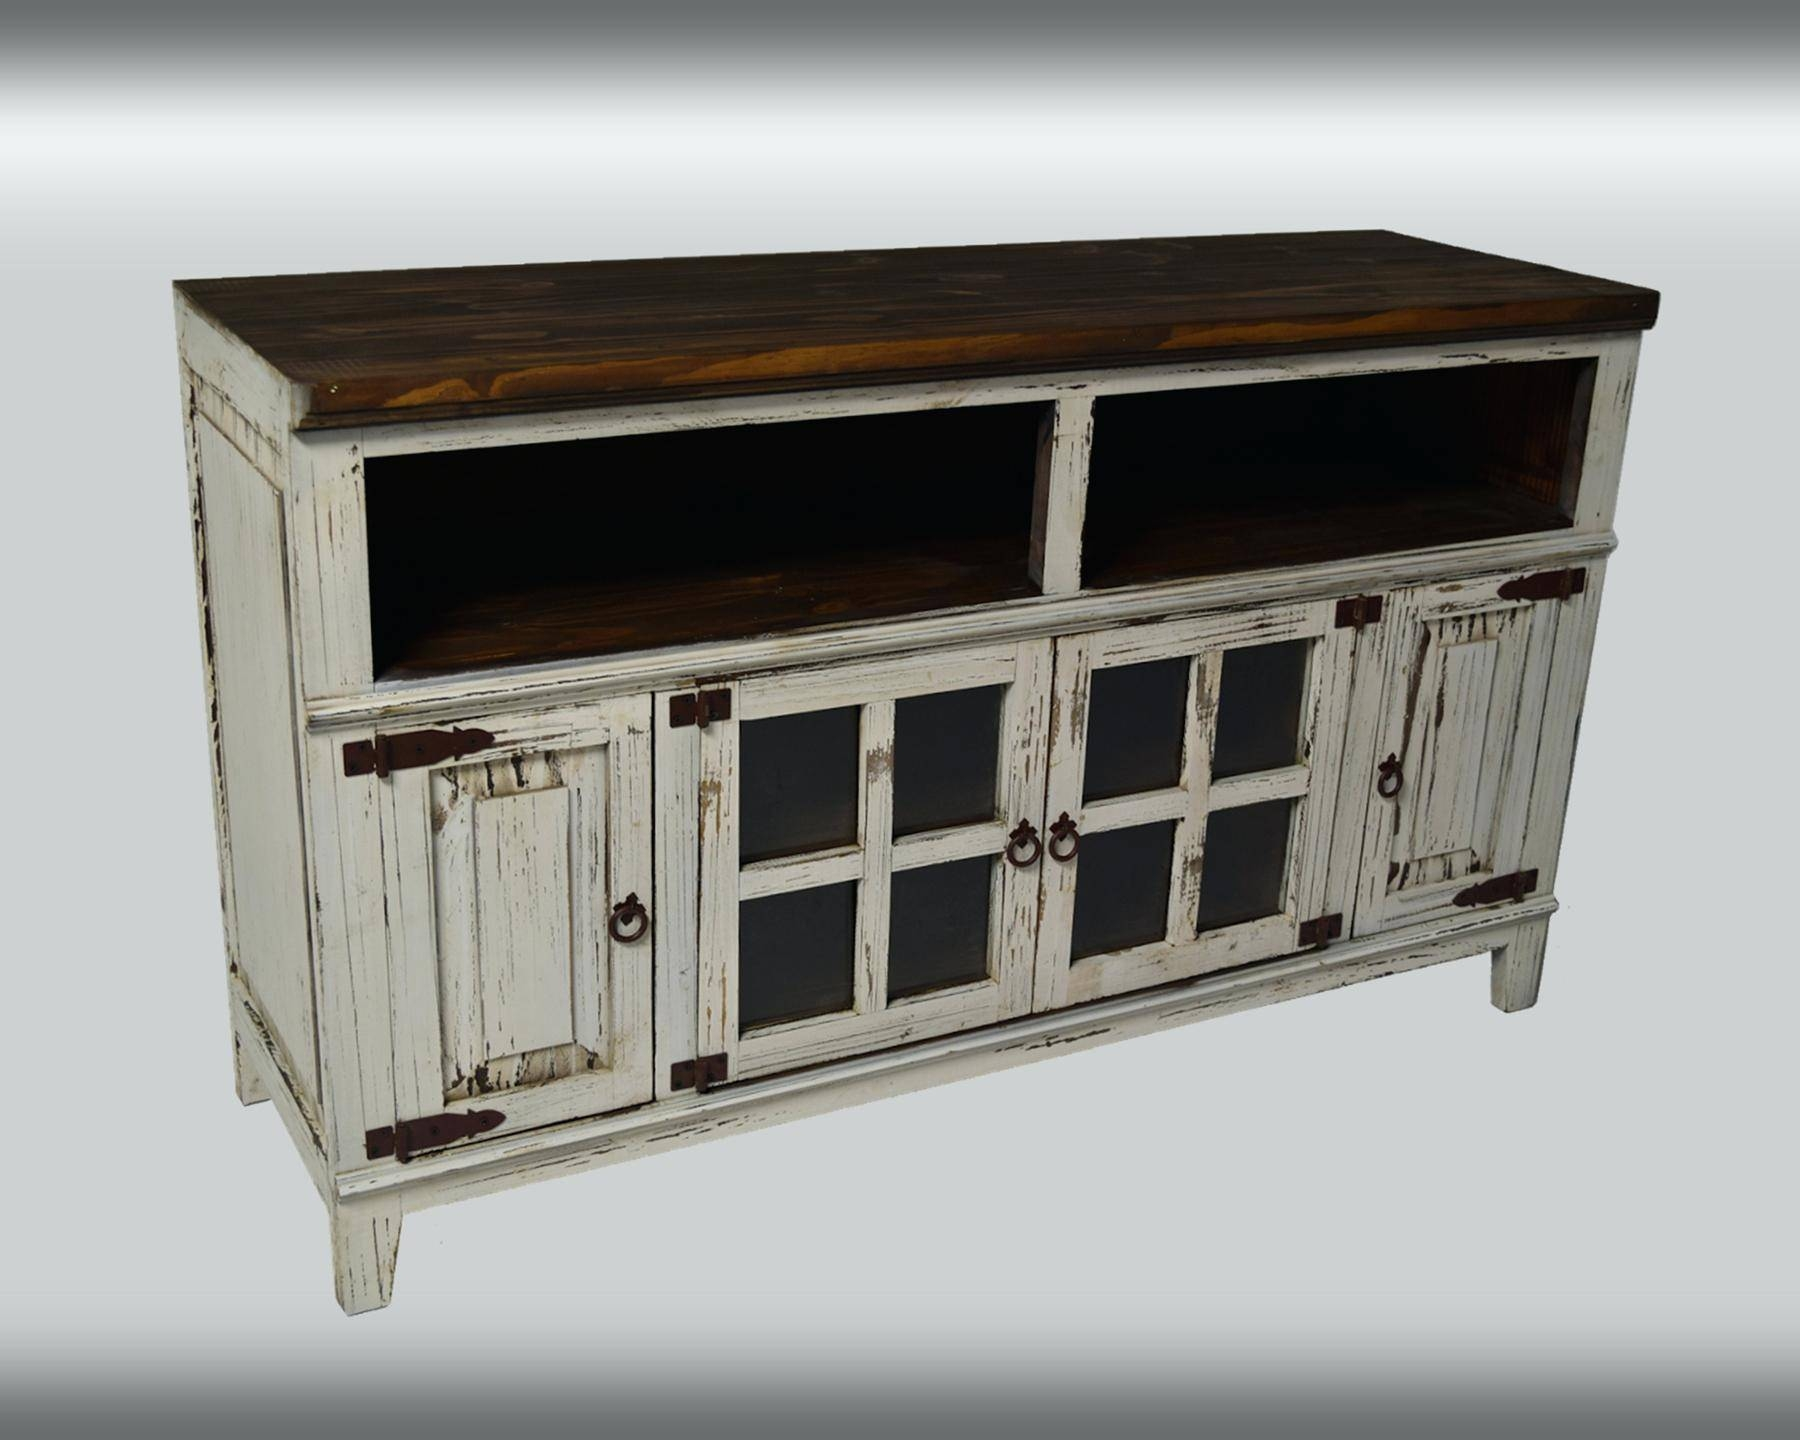 Tv Stand : Farmhouse Tv Console Media Console Rustic Tv Stand Tv with regard to Rustic Tv Cabinets (Image 11 of 15)